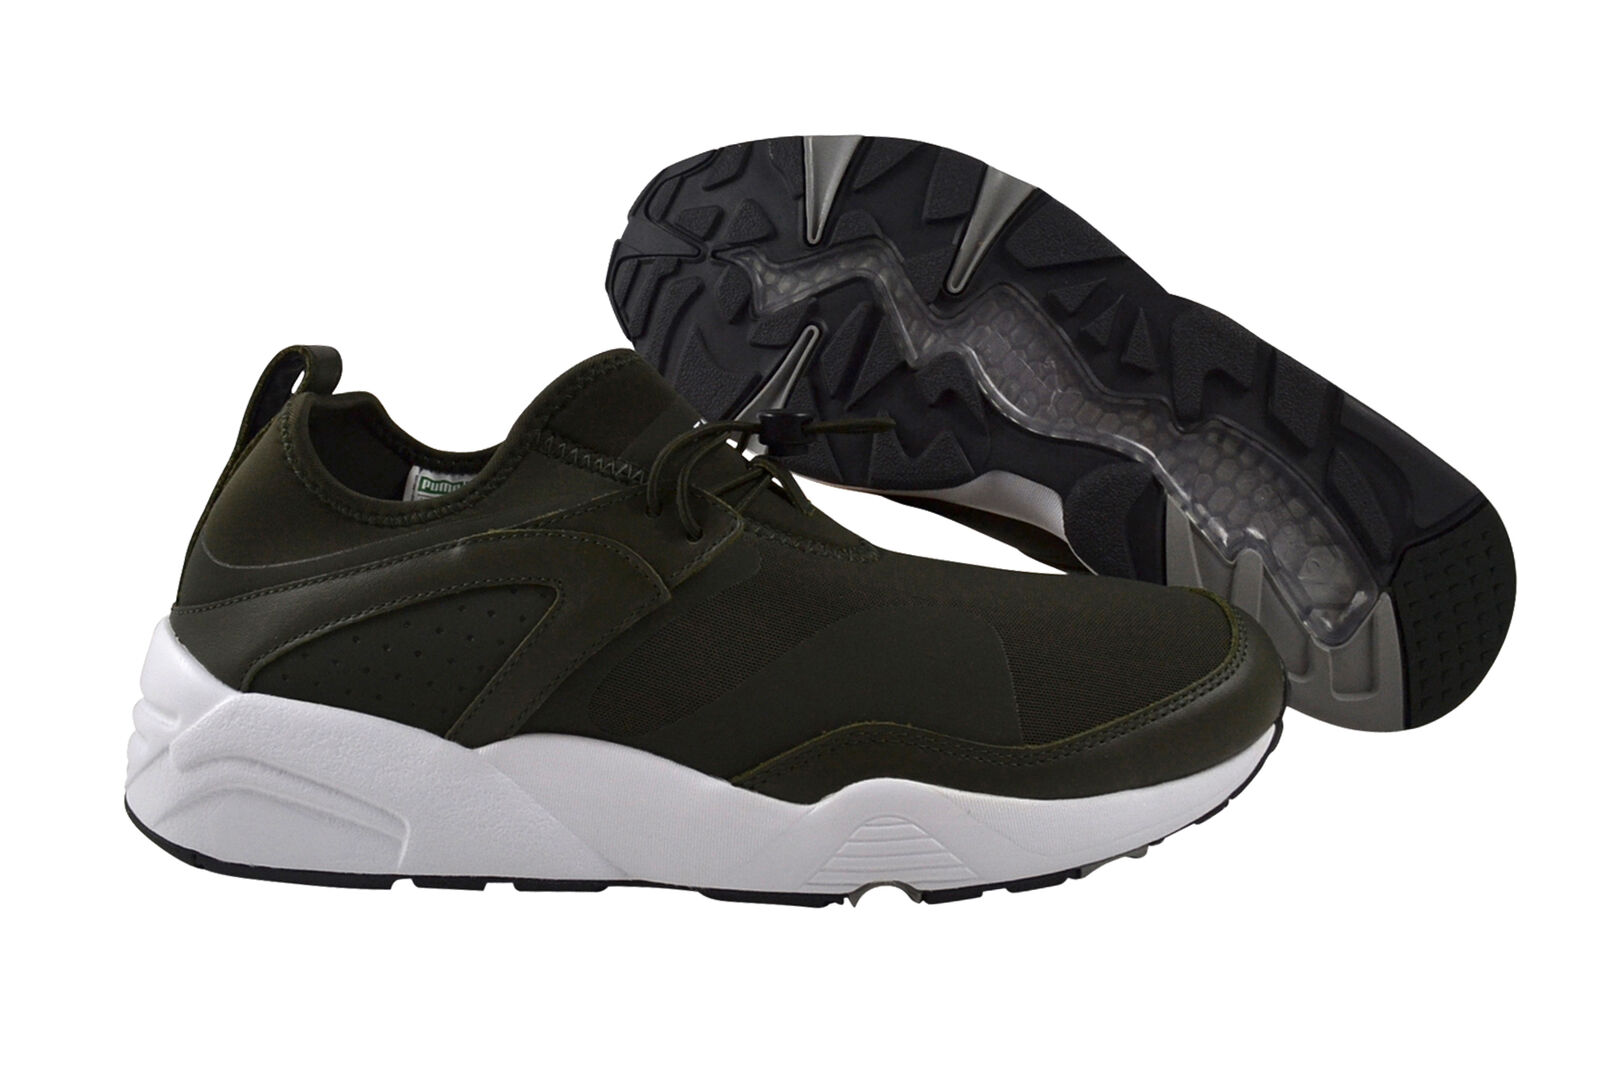 PUMA Blaze of Glory NUX Stampd 361493 01 FOREST NIGHT WHITE VERDE